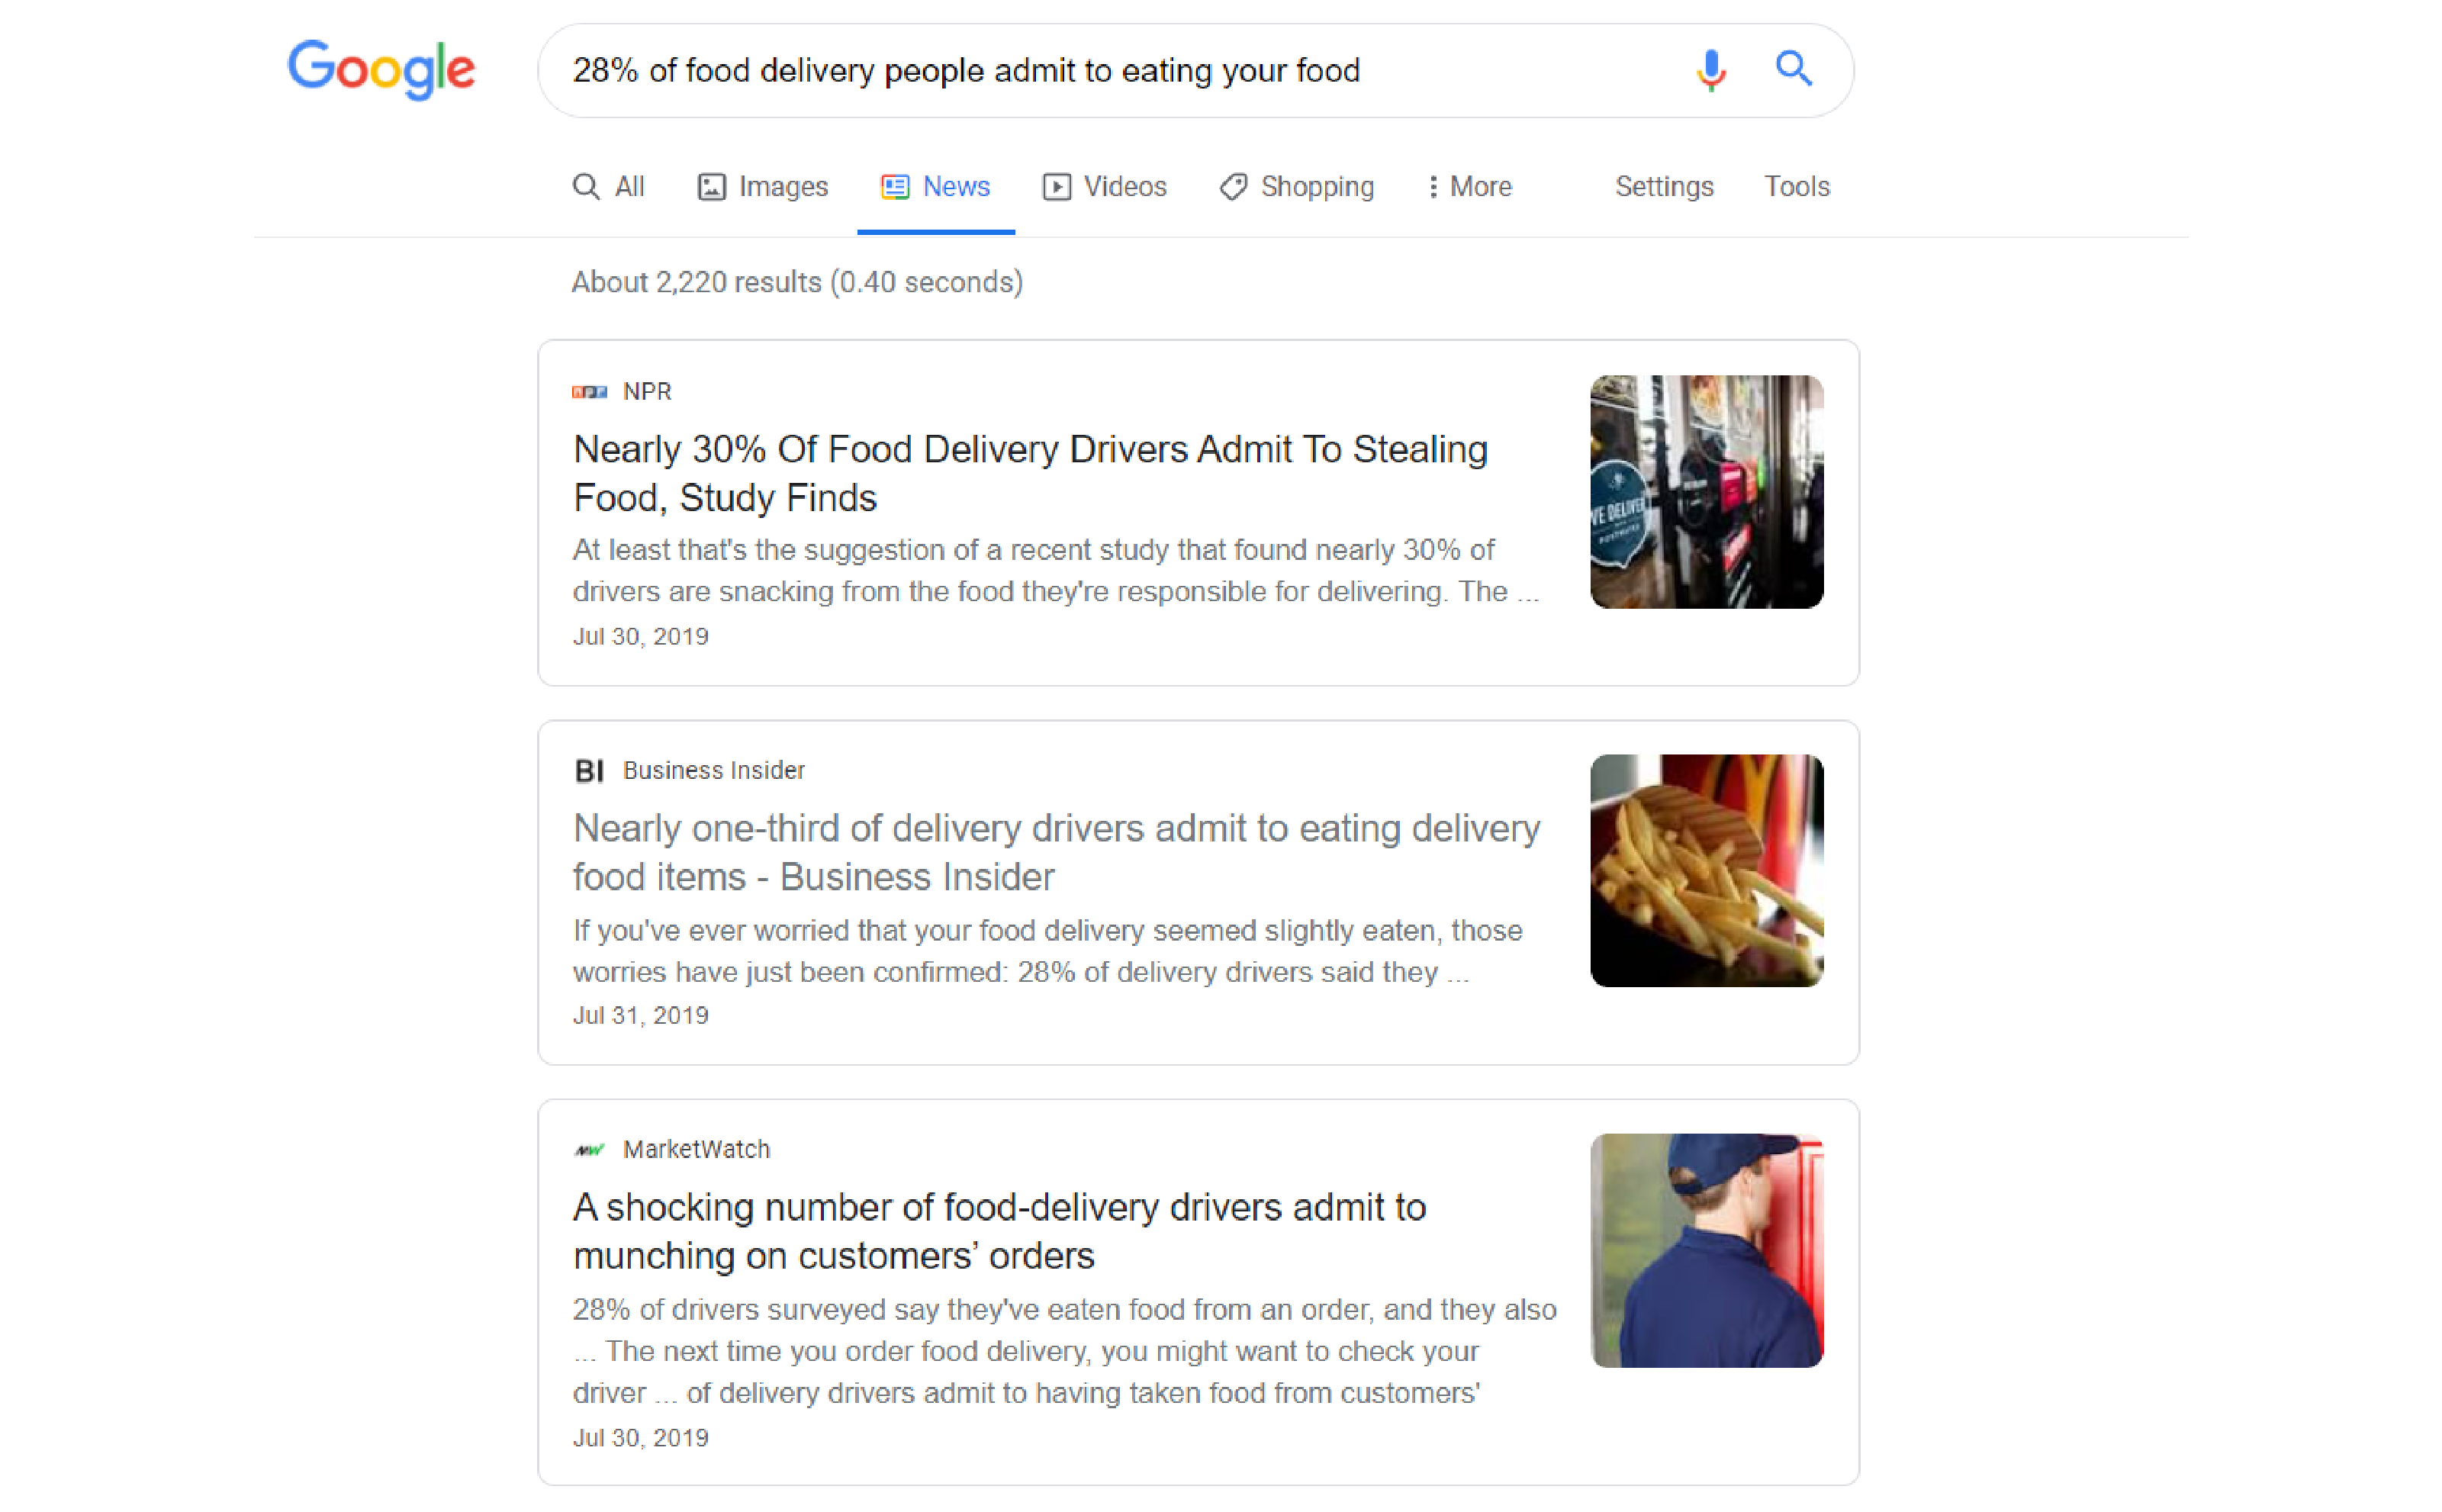 SERP for a news article